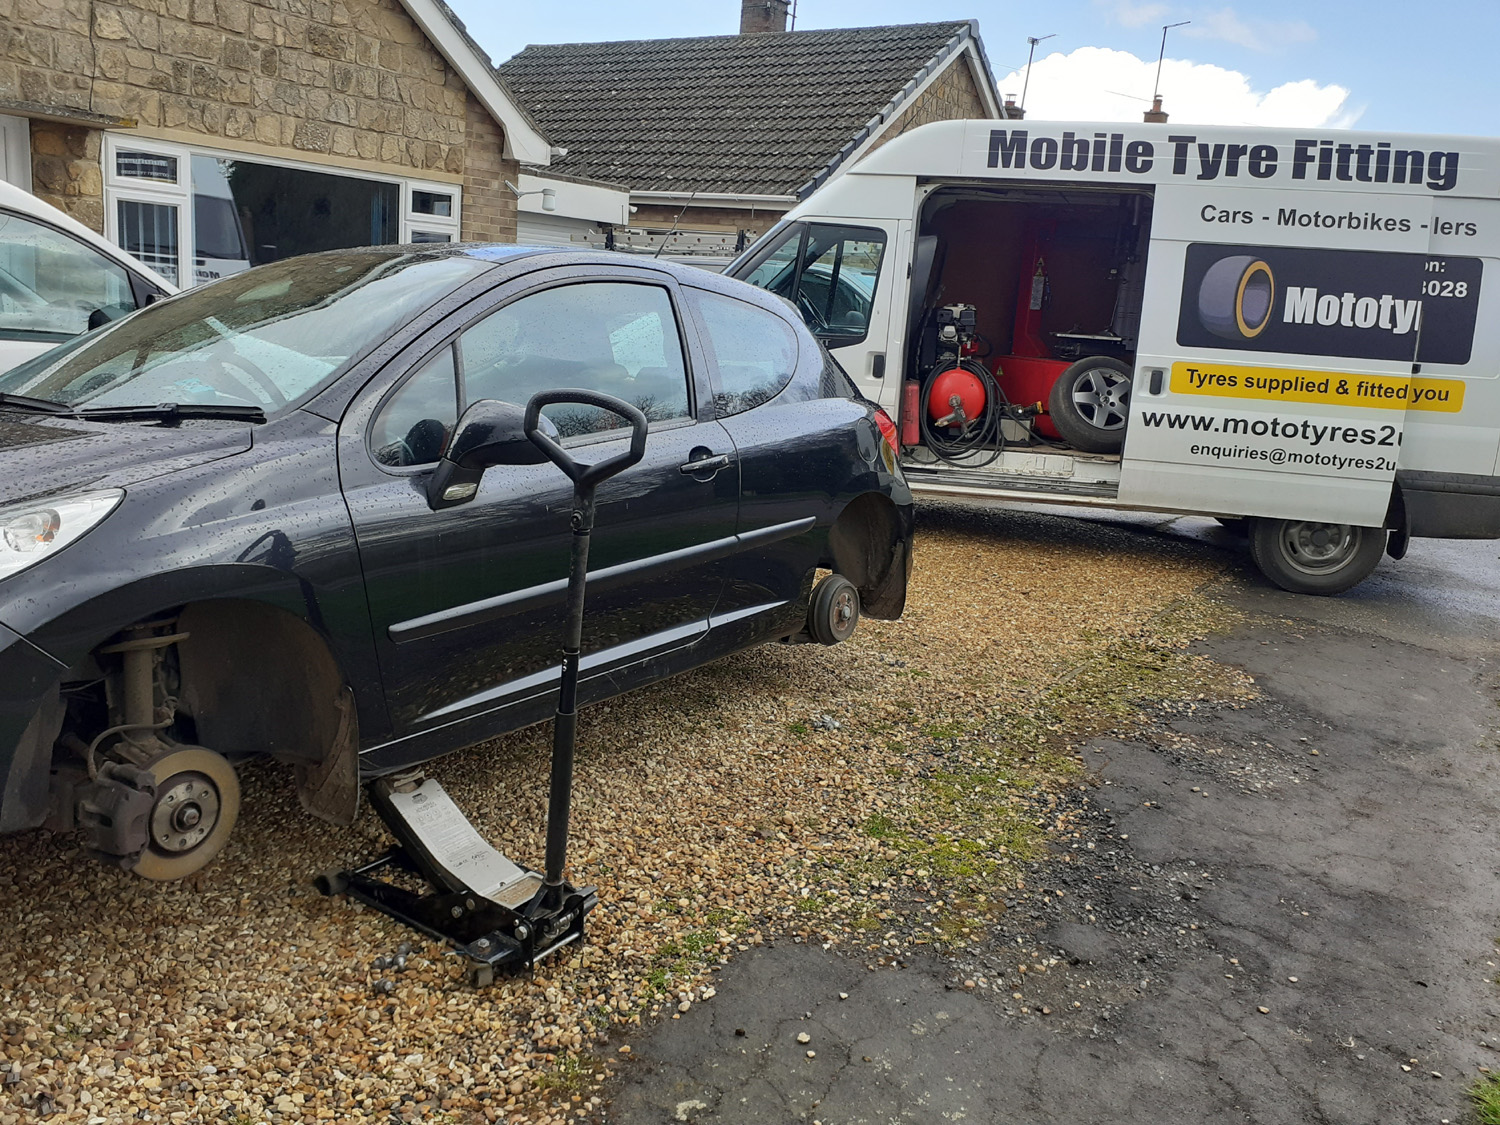 Mototyres 2 u Mobile Tyre fitting Lincolnshire Holbeach Tyres Black Peugeot 2 tyres changed on drive